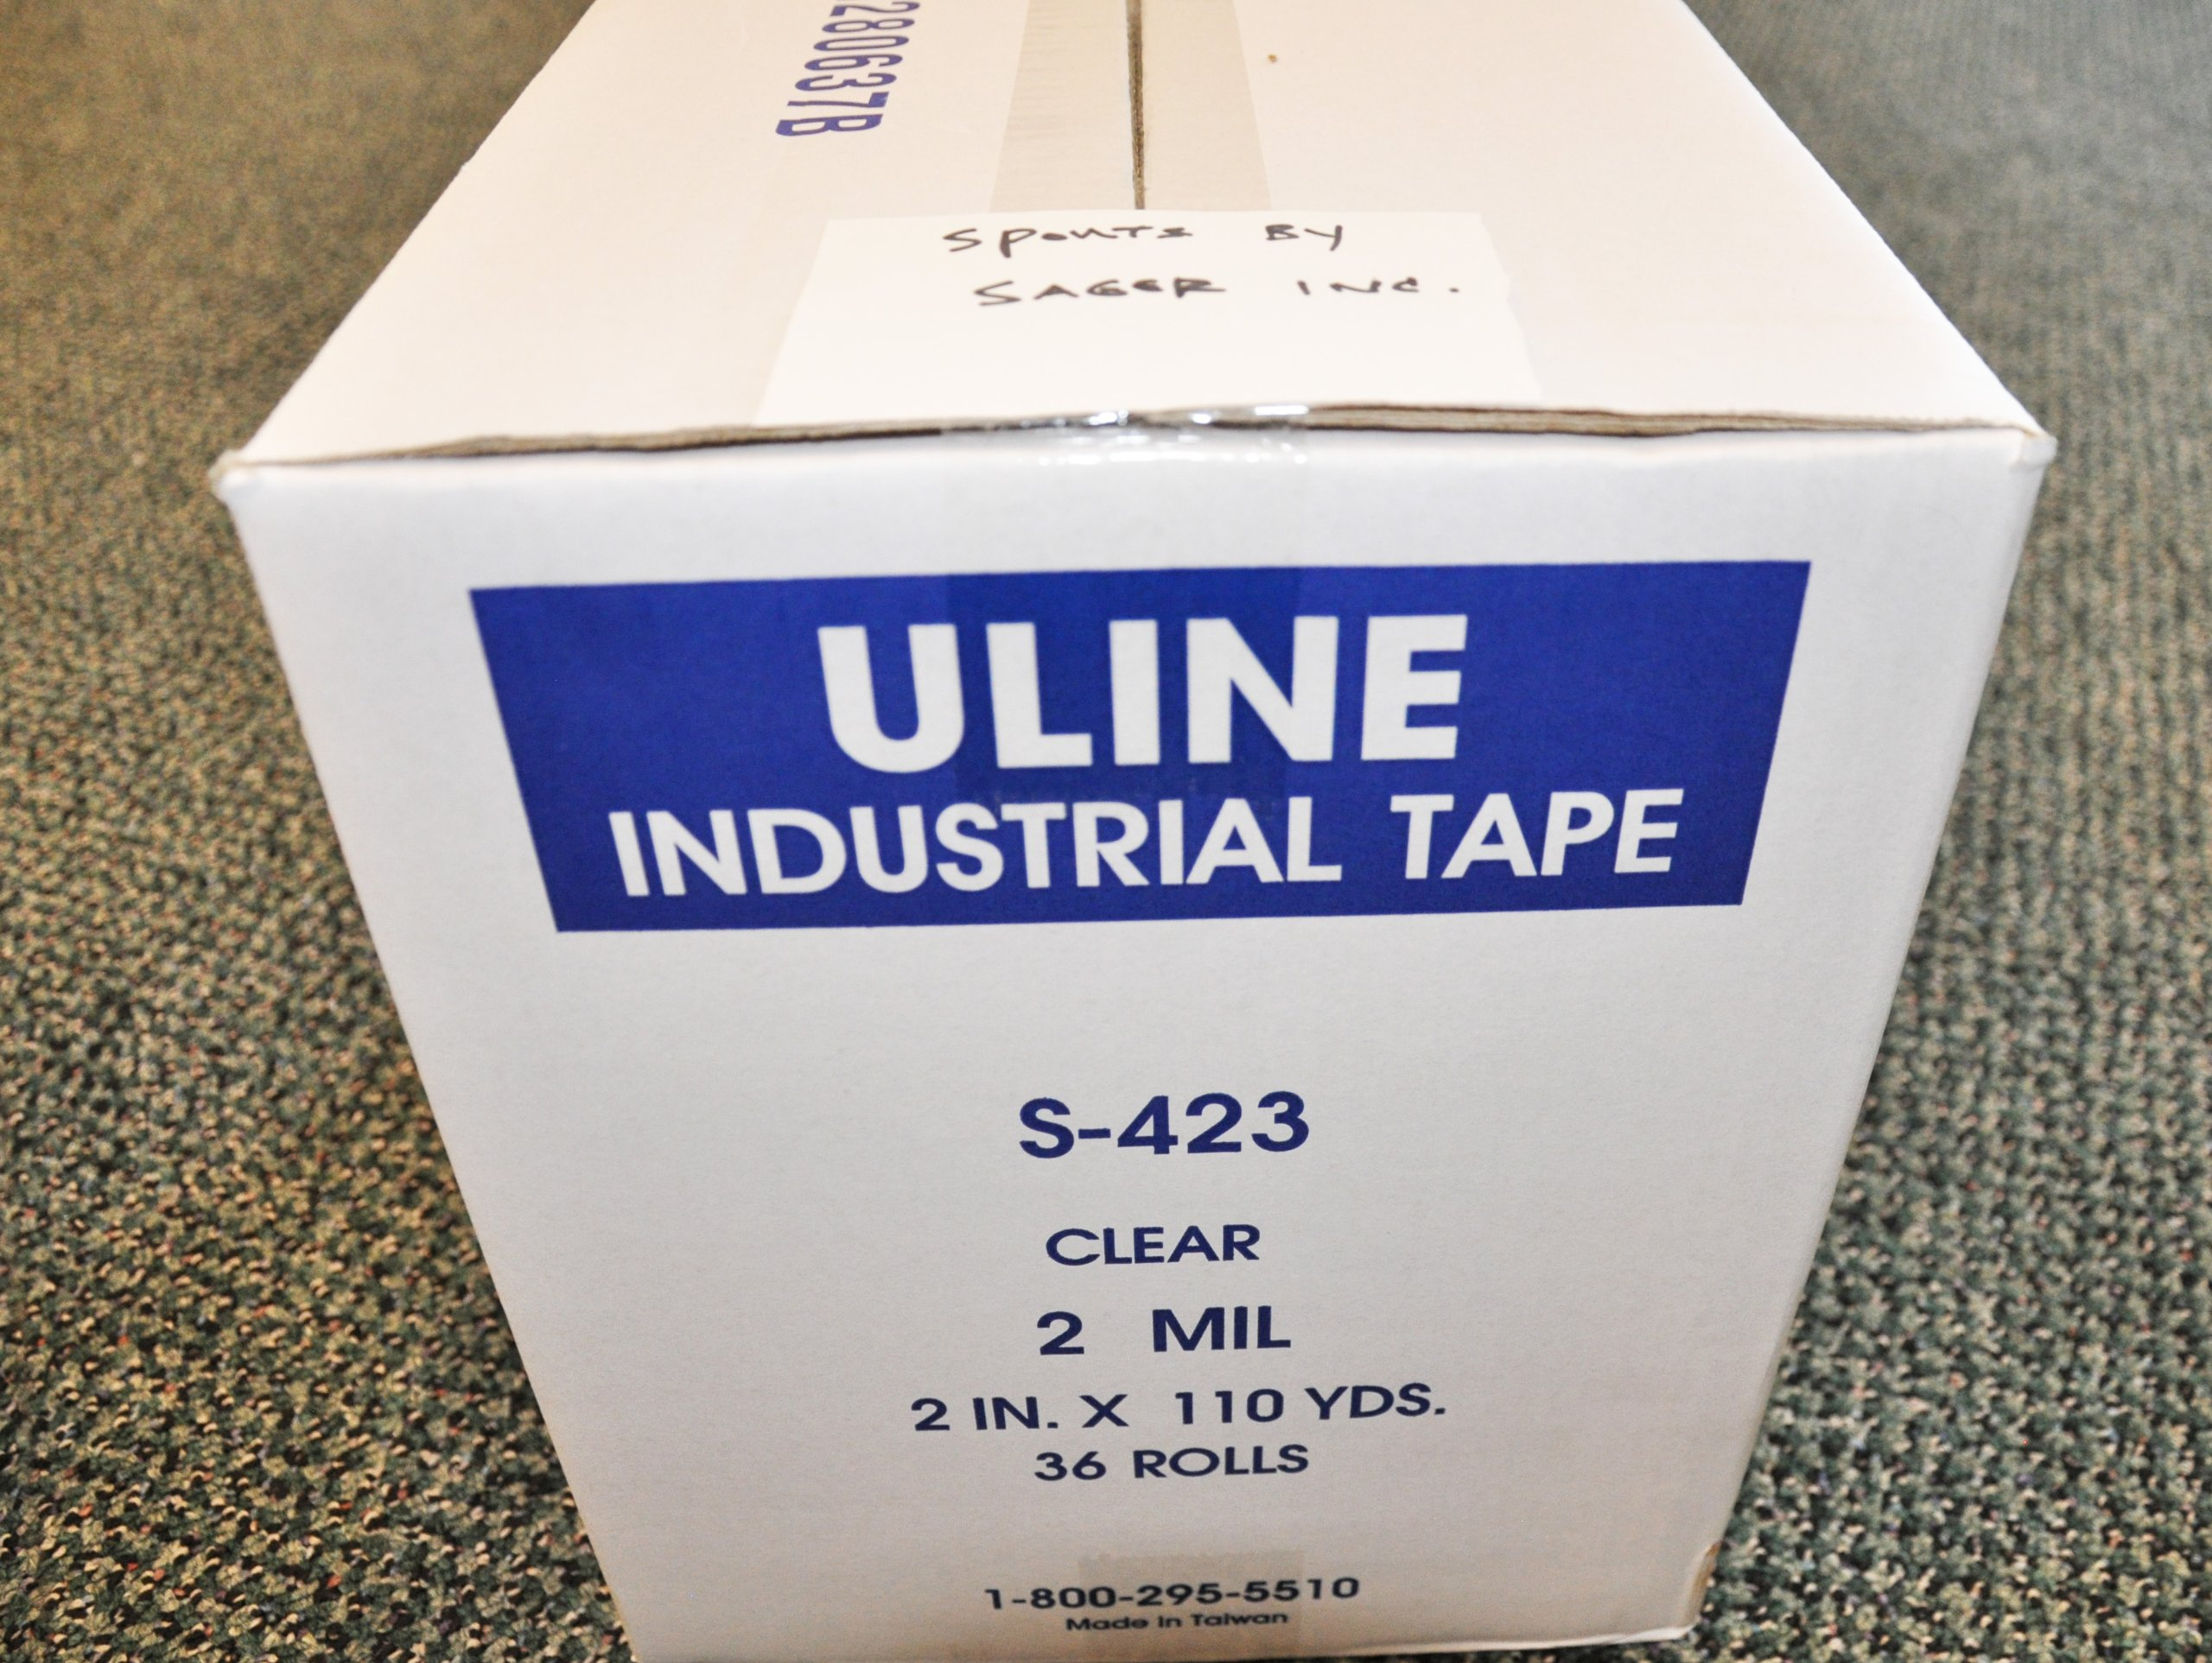 Case of Clear Uline Packing Shipping Box Tape Model S-423 Industrial 2.0 Mils